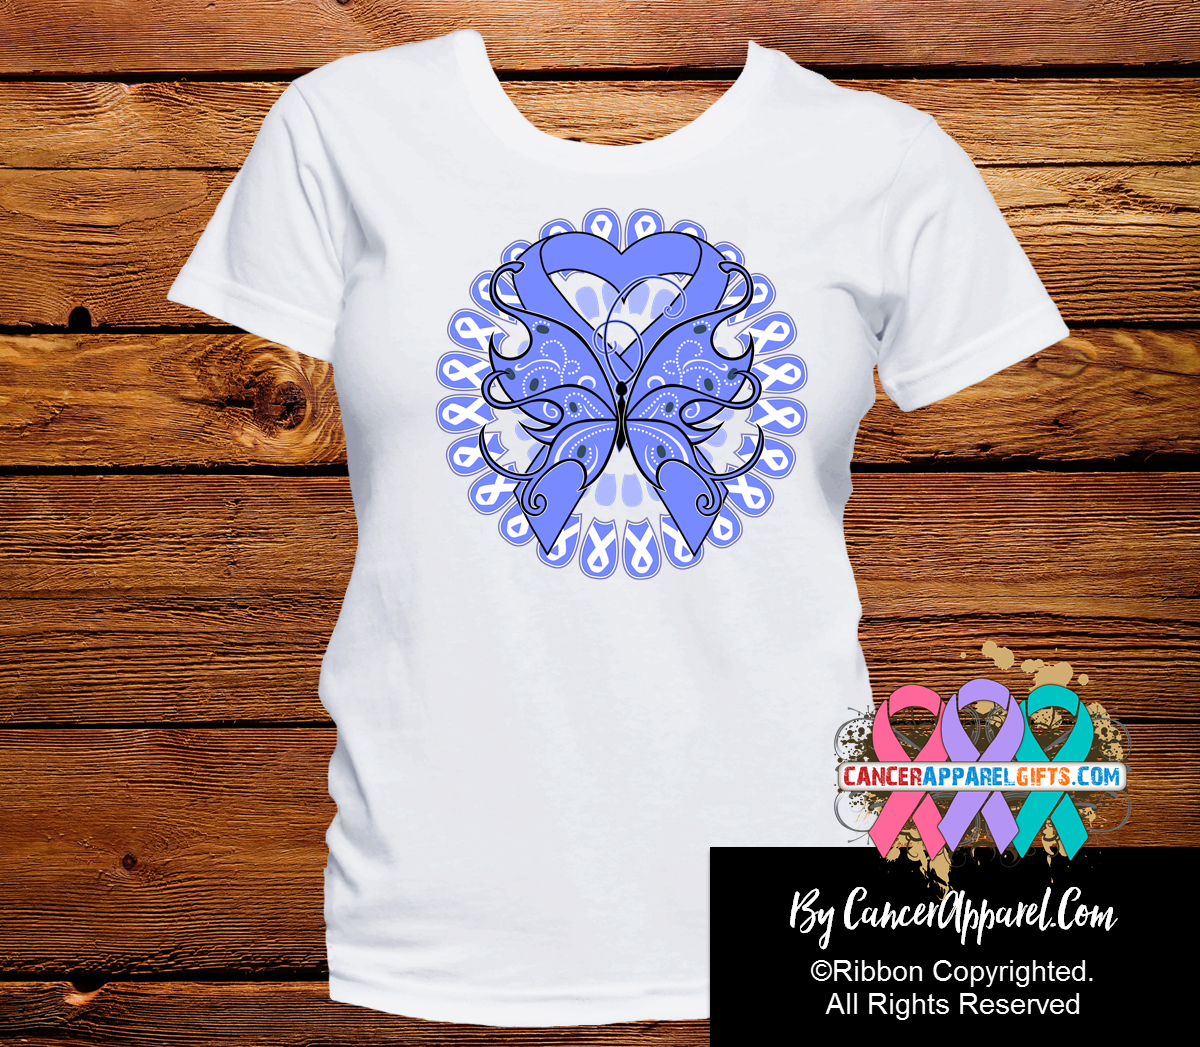 Esophageal Cancer Stunning Butterfly Shirts - Cancer Apparel and Gifts